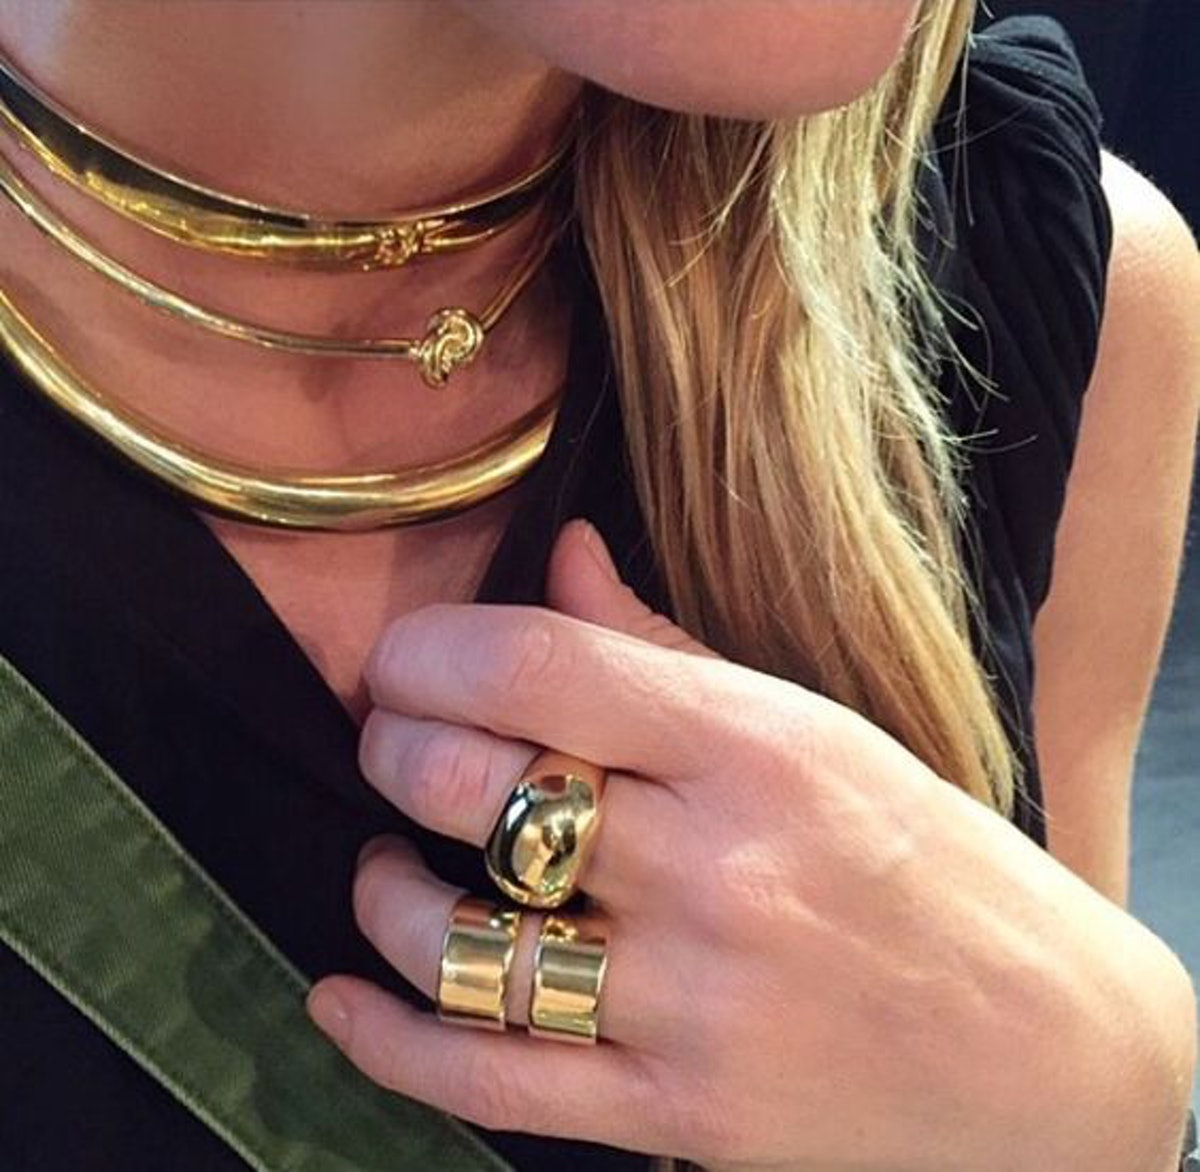 3. JENNIFER JEWELRY LOOK FOR GAME DAY